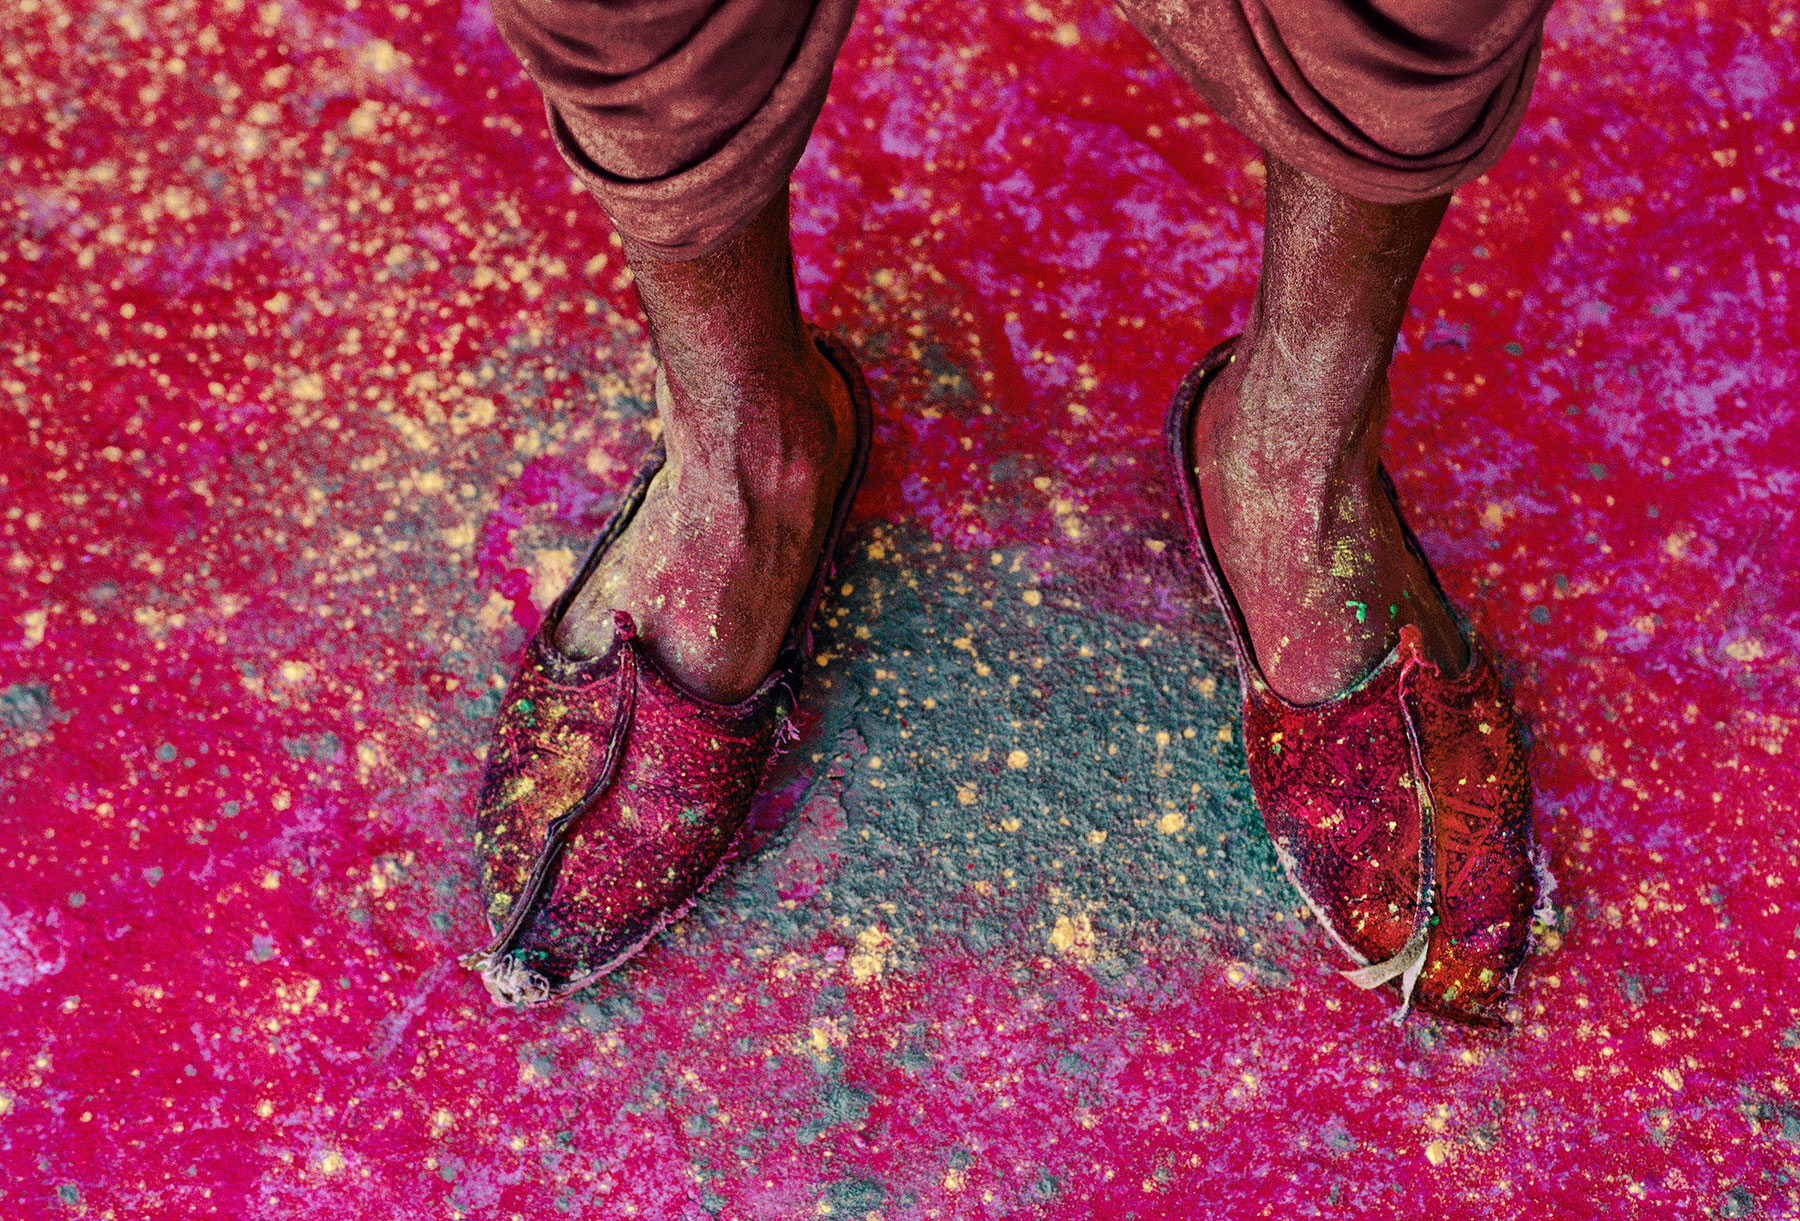 Rajasthan, India - Steve McCurry photography